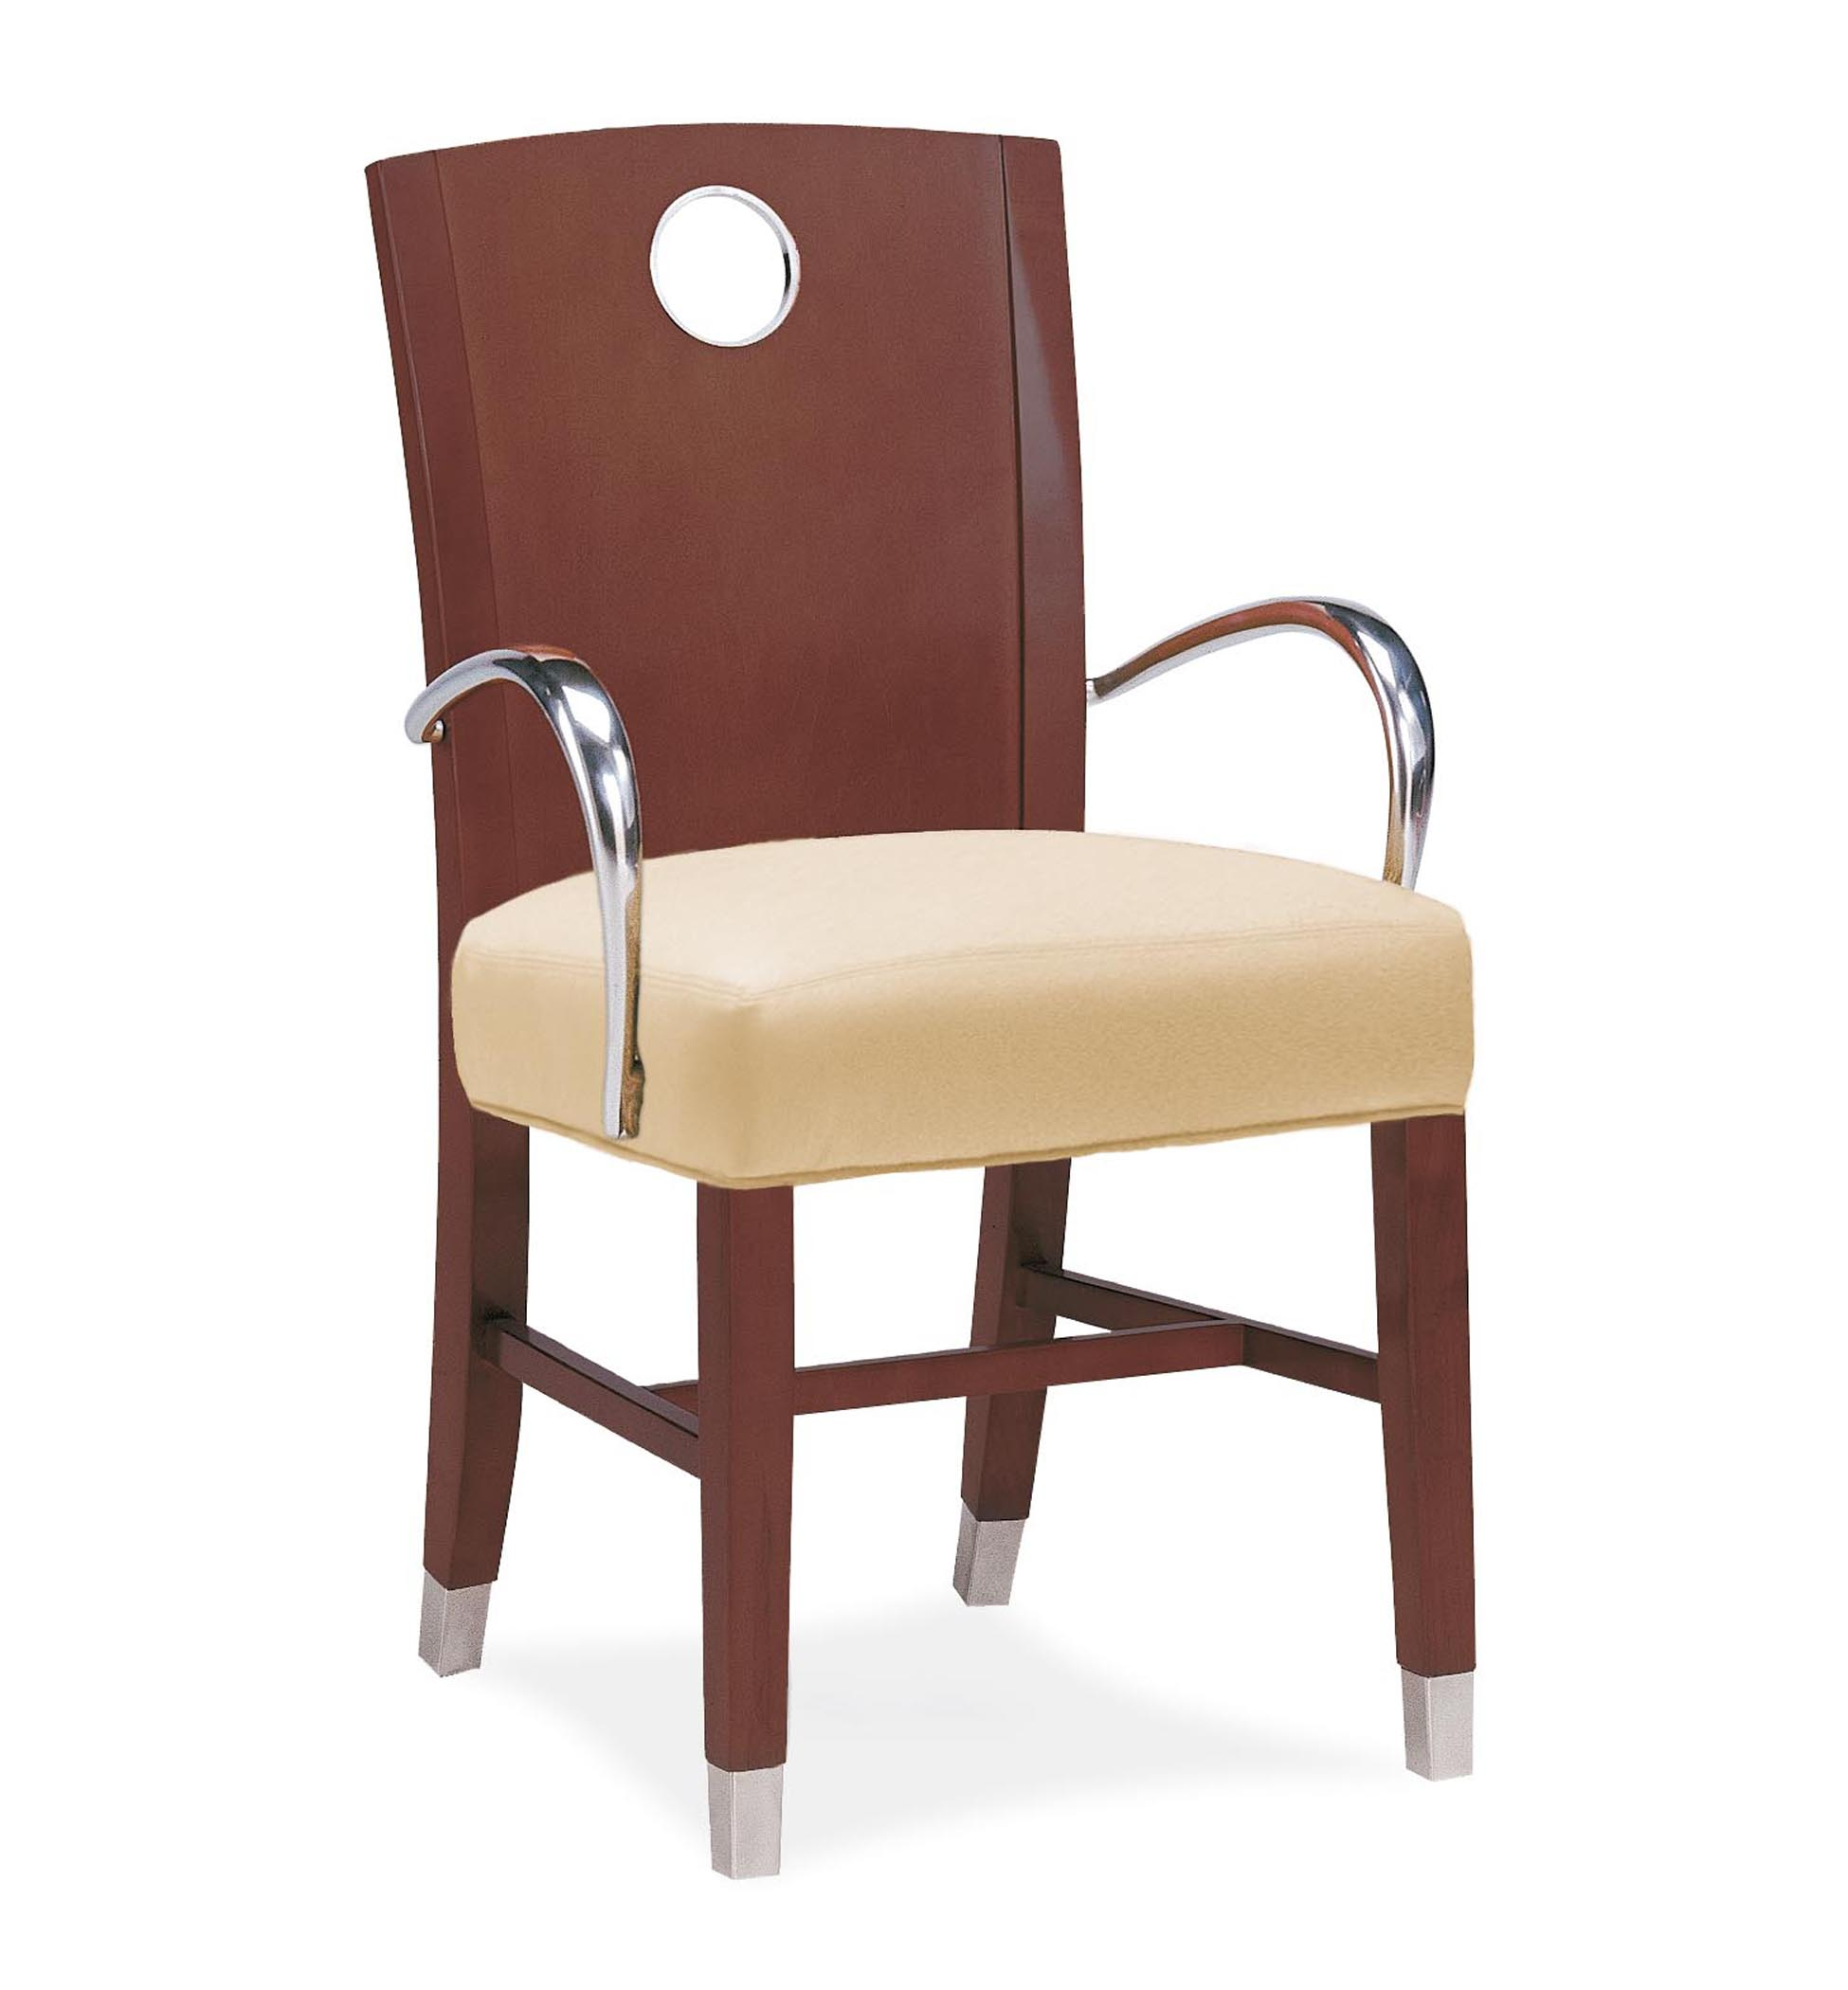 Wooden Arm Chair 2355 Wood Arm Chair